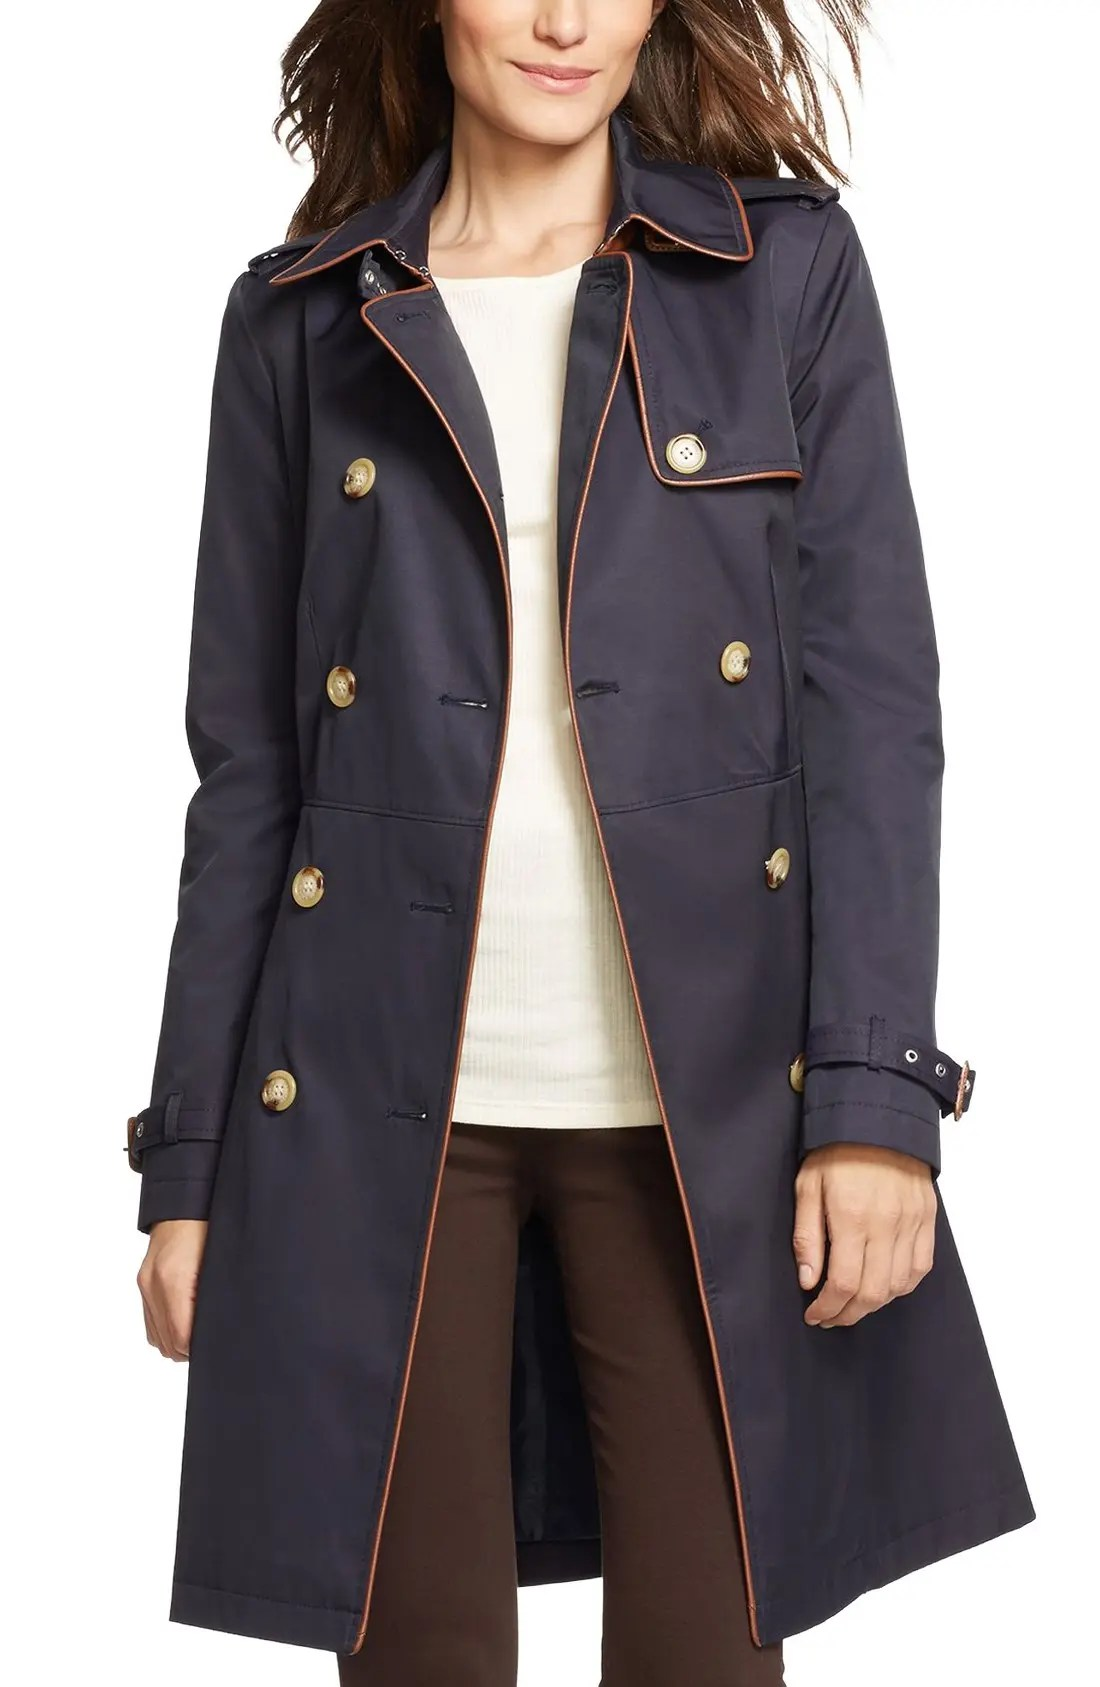 Main Image - Lauren Ralph Lauren Faux Leather Trim Trench Coat (Regular & Petite)